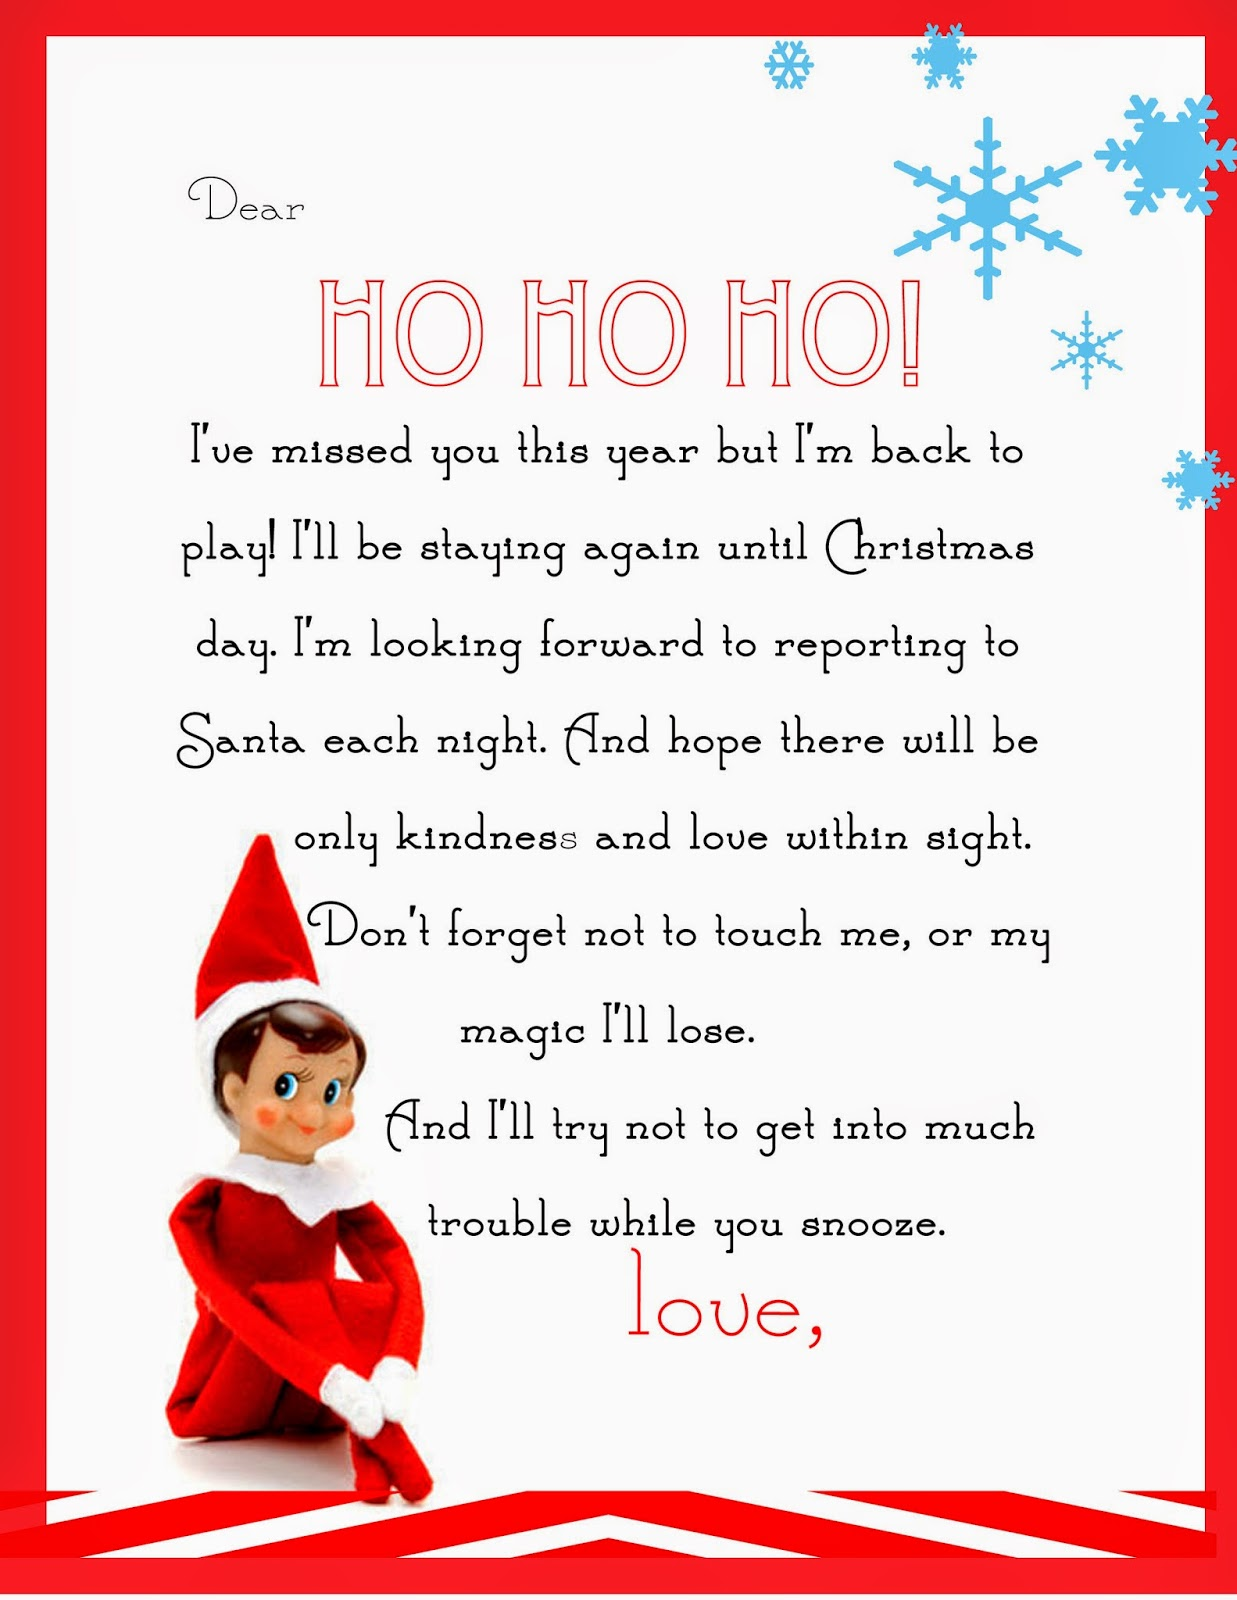 picture regarding Elf on the Shelf Printable Props referred to as Elf upon the Shelf Options for Advent: 10 Totally free Printables